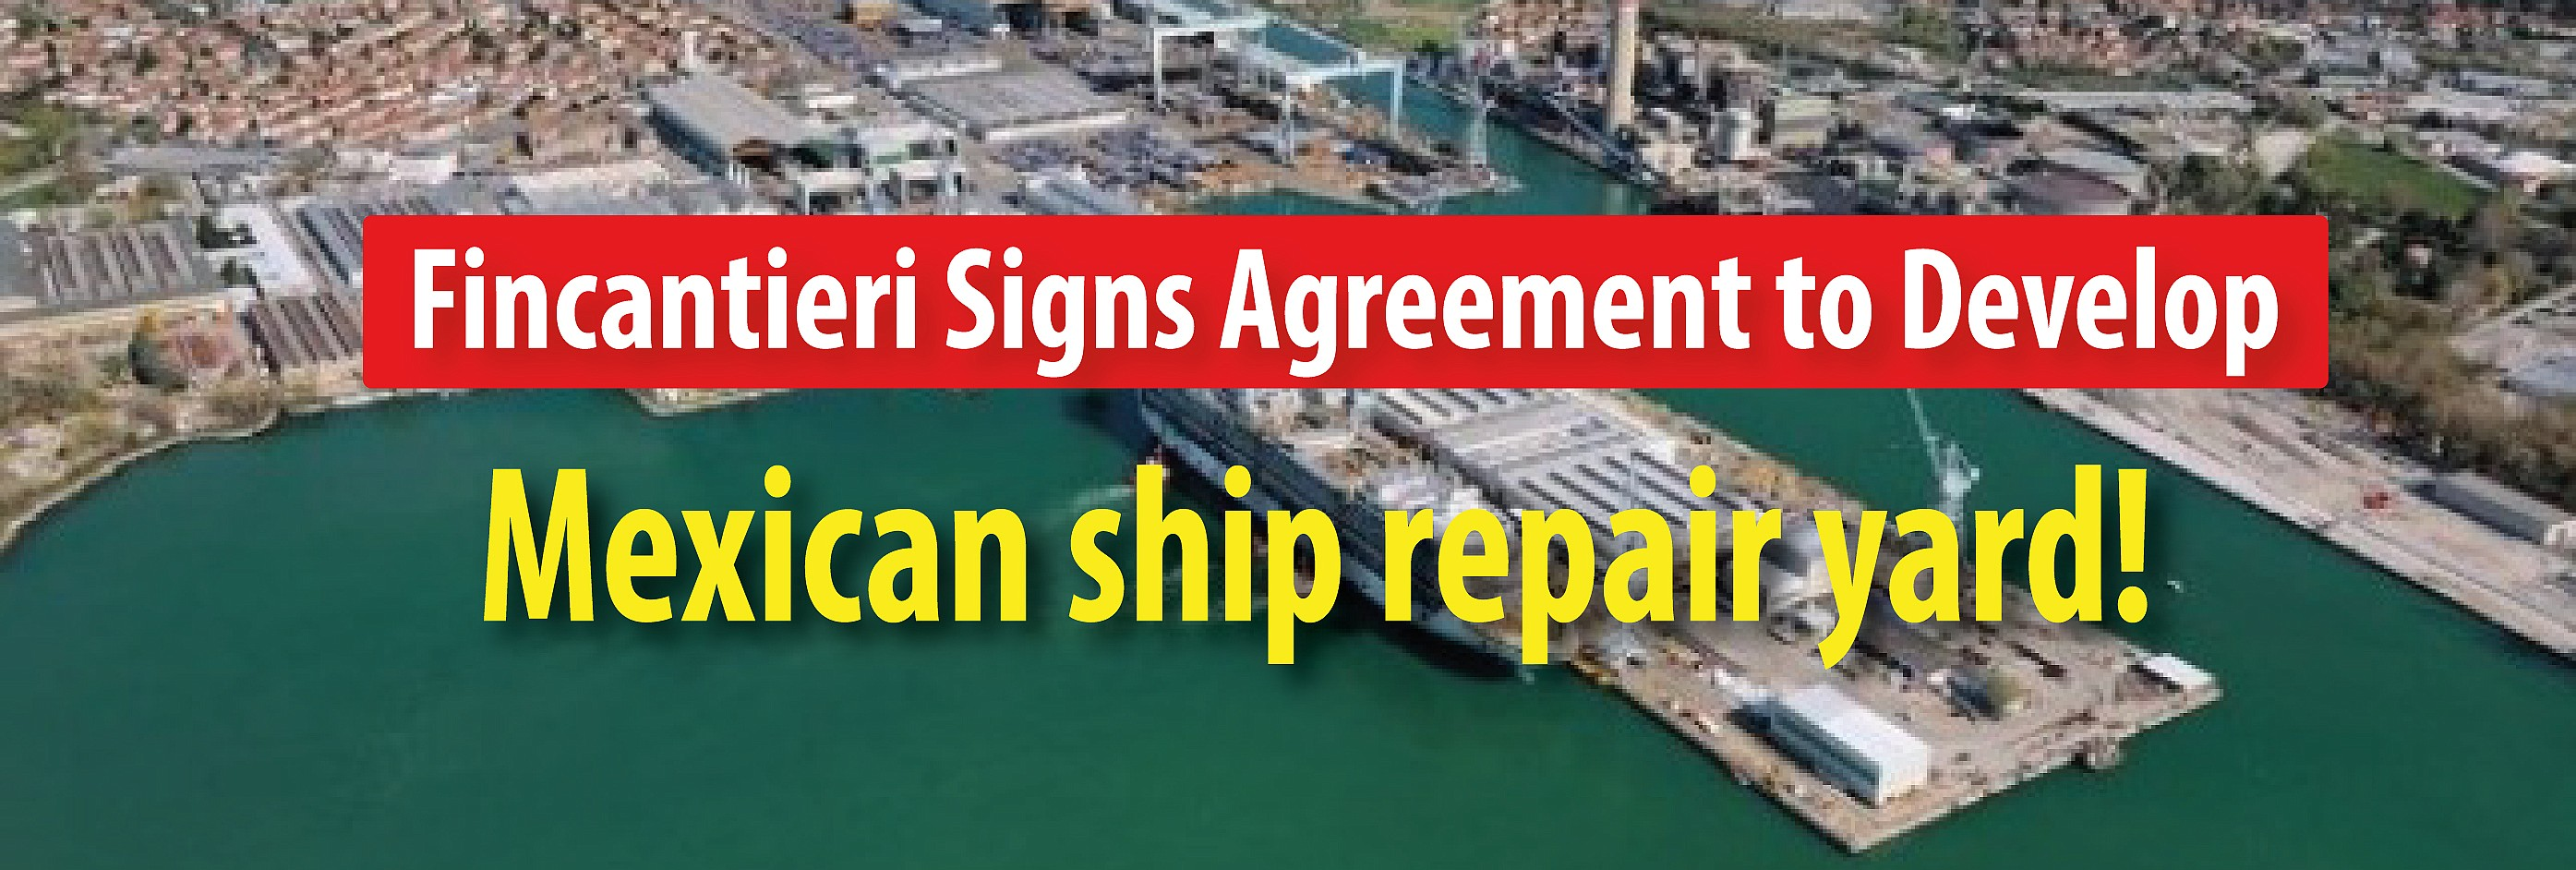 Fincantieri Signs Agreement to Develop New Mexican Ship Repair Yard!